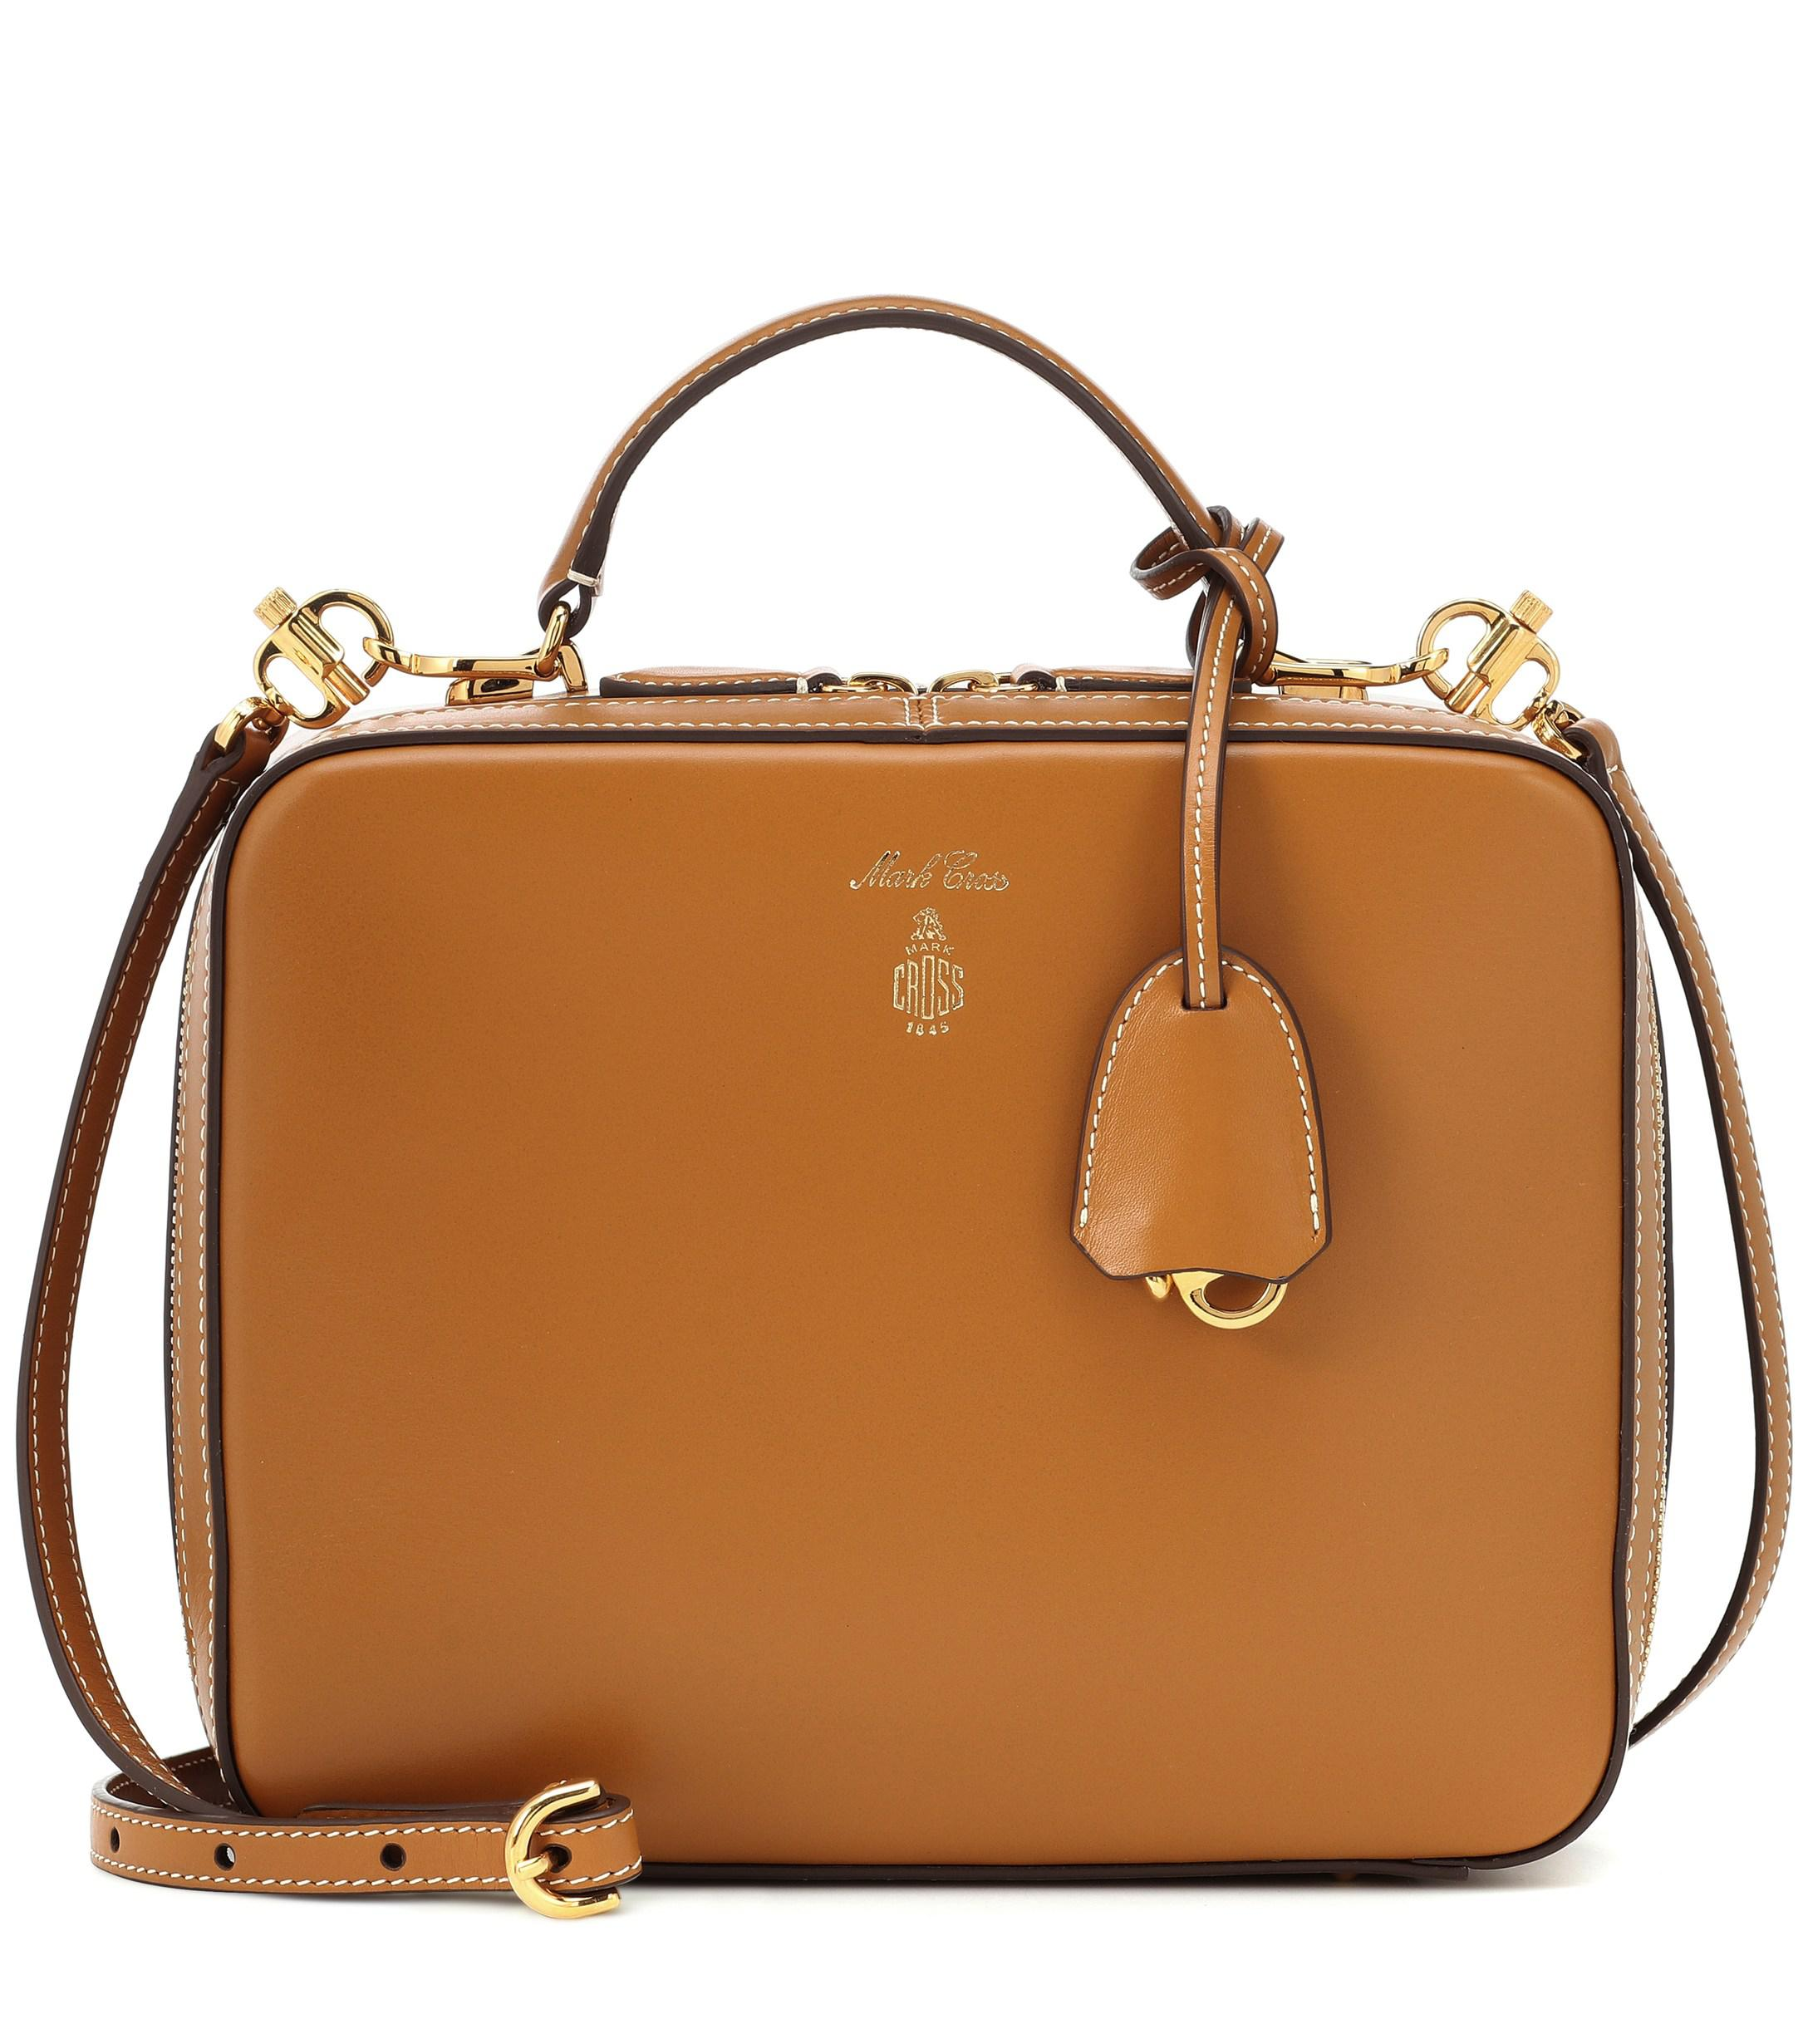 88714be92422 Mark Cross Laura Leather Shoulder Bag in Natural - Lyst